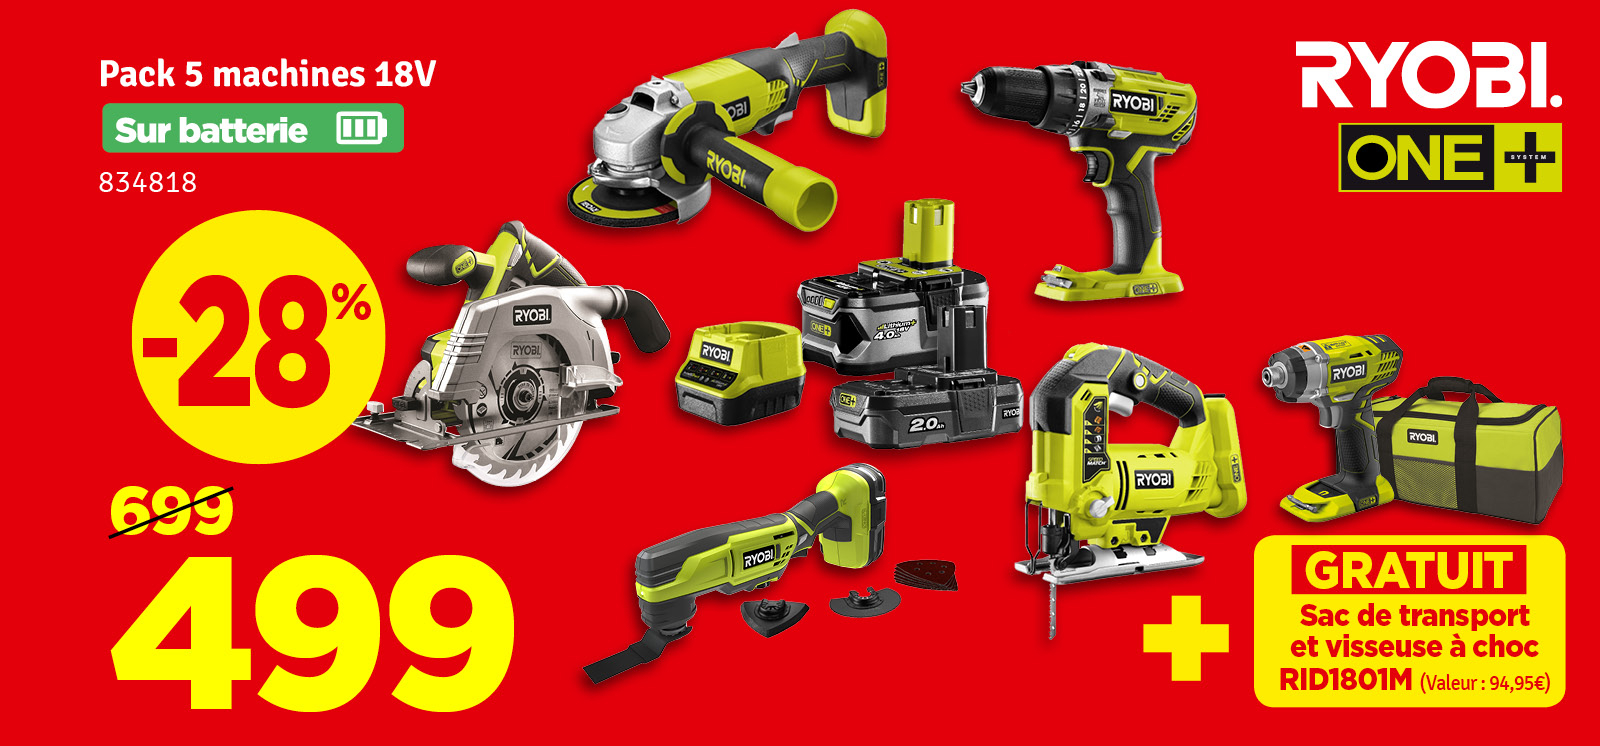 Promo - Pack machines R18CK5A-242S One+ 5 pièces RYOBI